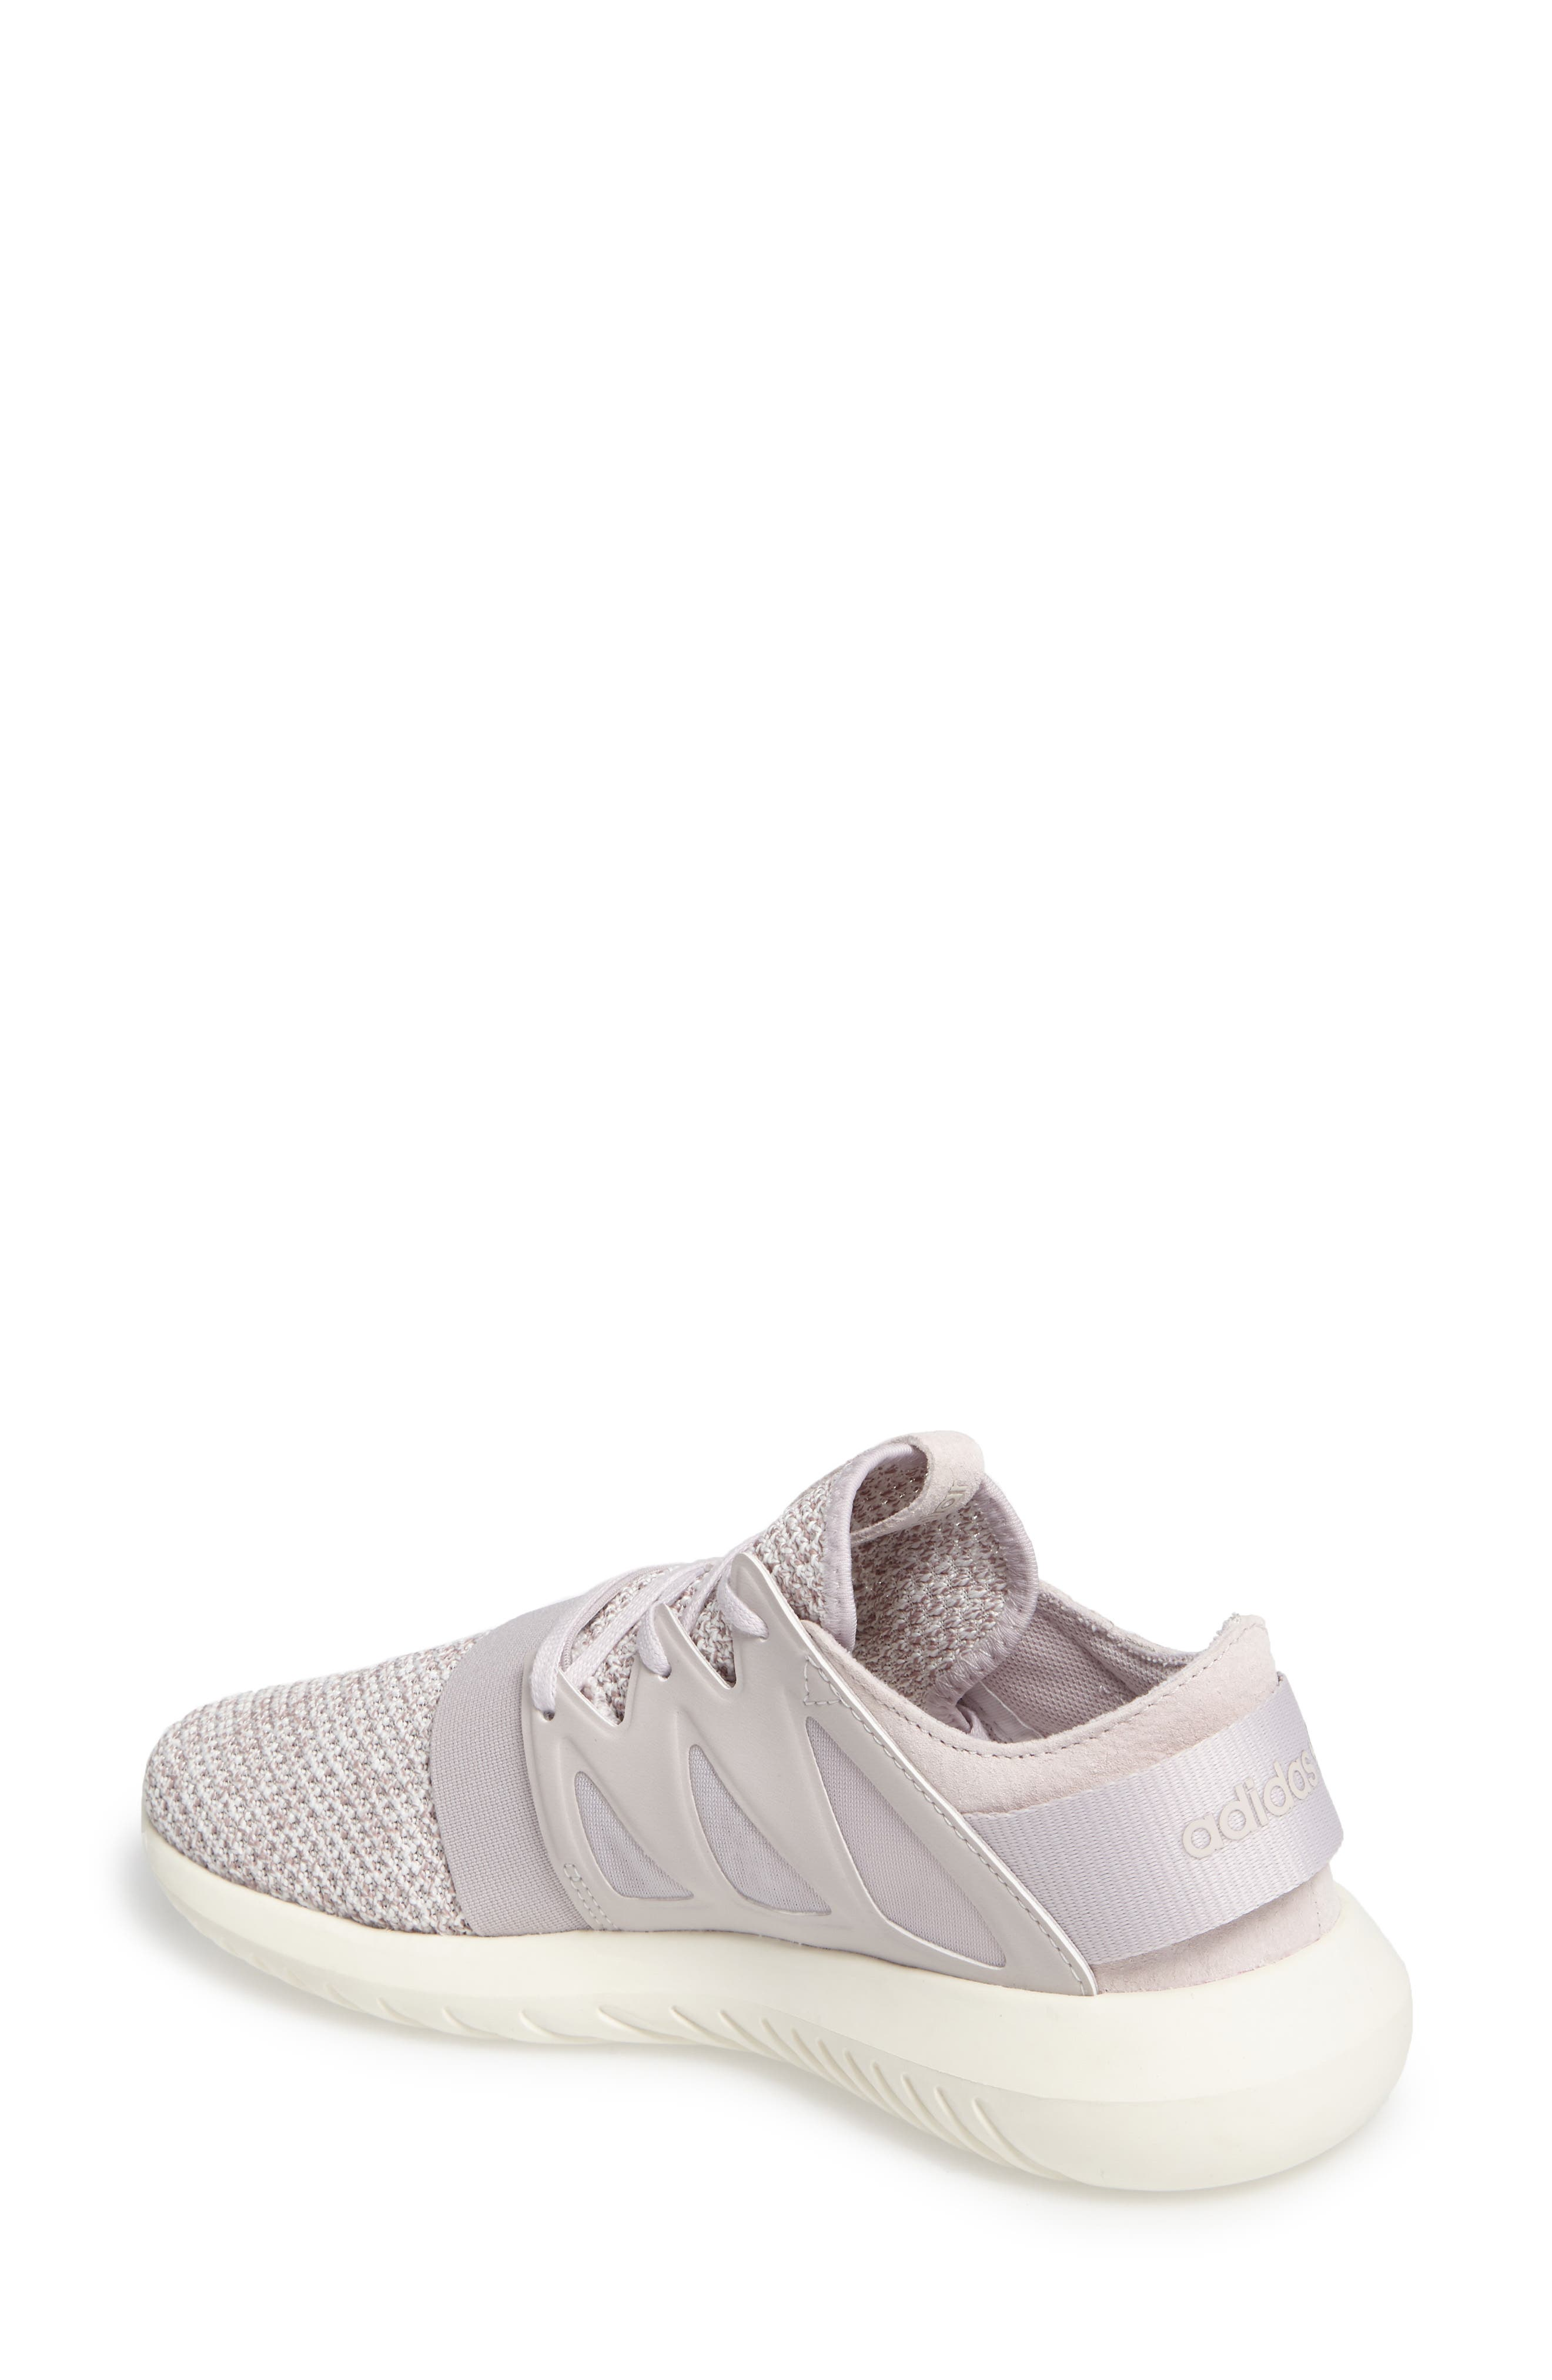 Alternate Image 2  - adidas Tubular Viral Knit Sneaker (Women)